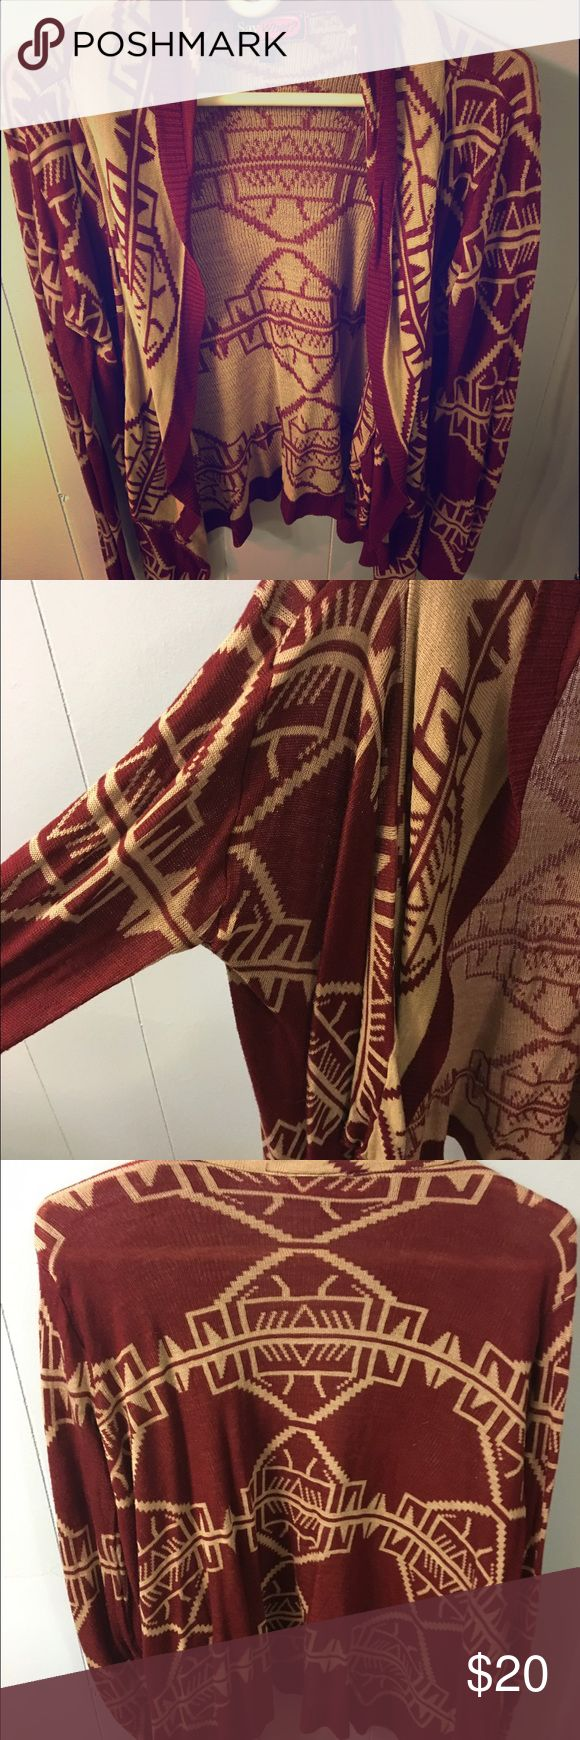 Tribal Sweater✌️ I am in love with this tribal sweater. It's maroon and tan ❤️ Sweaters Cardigans